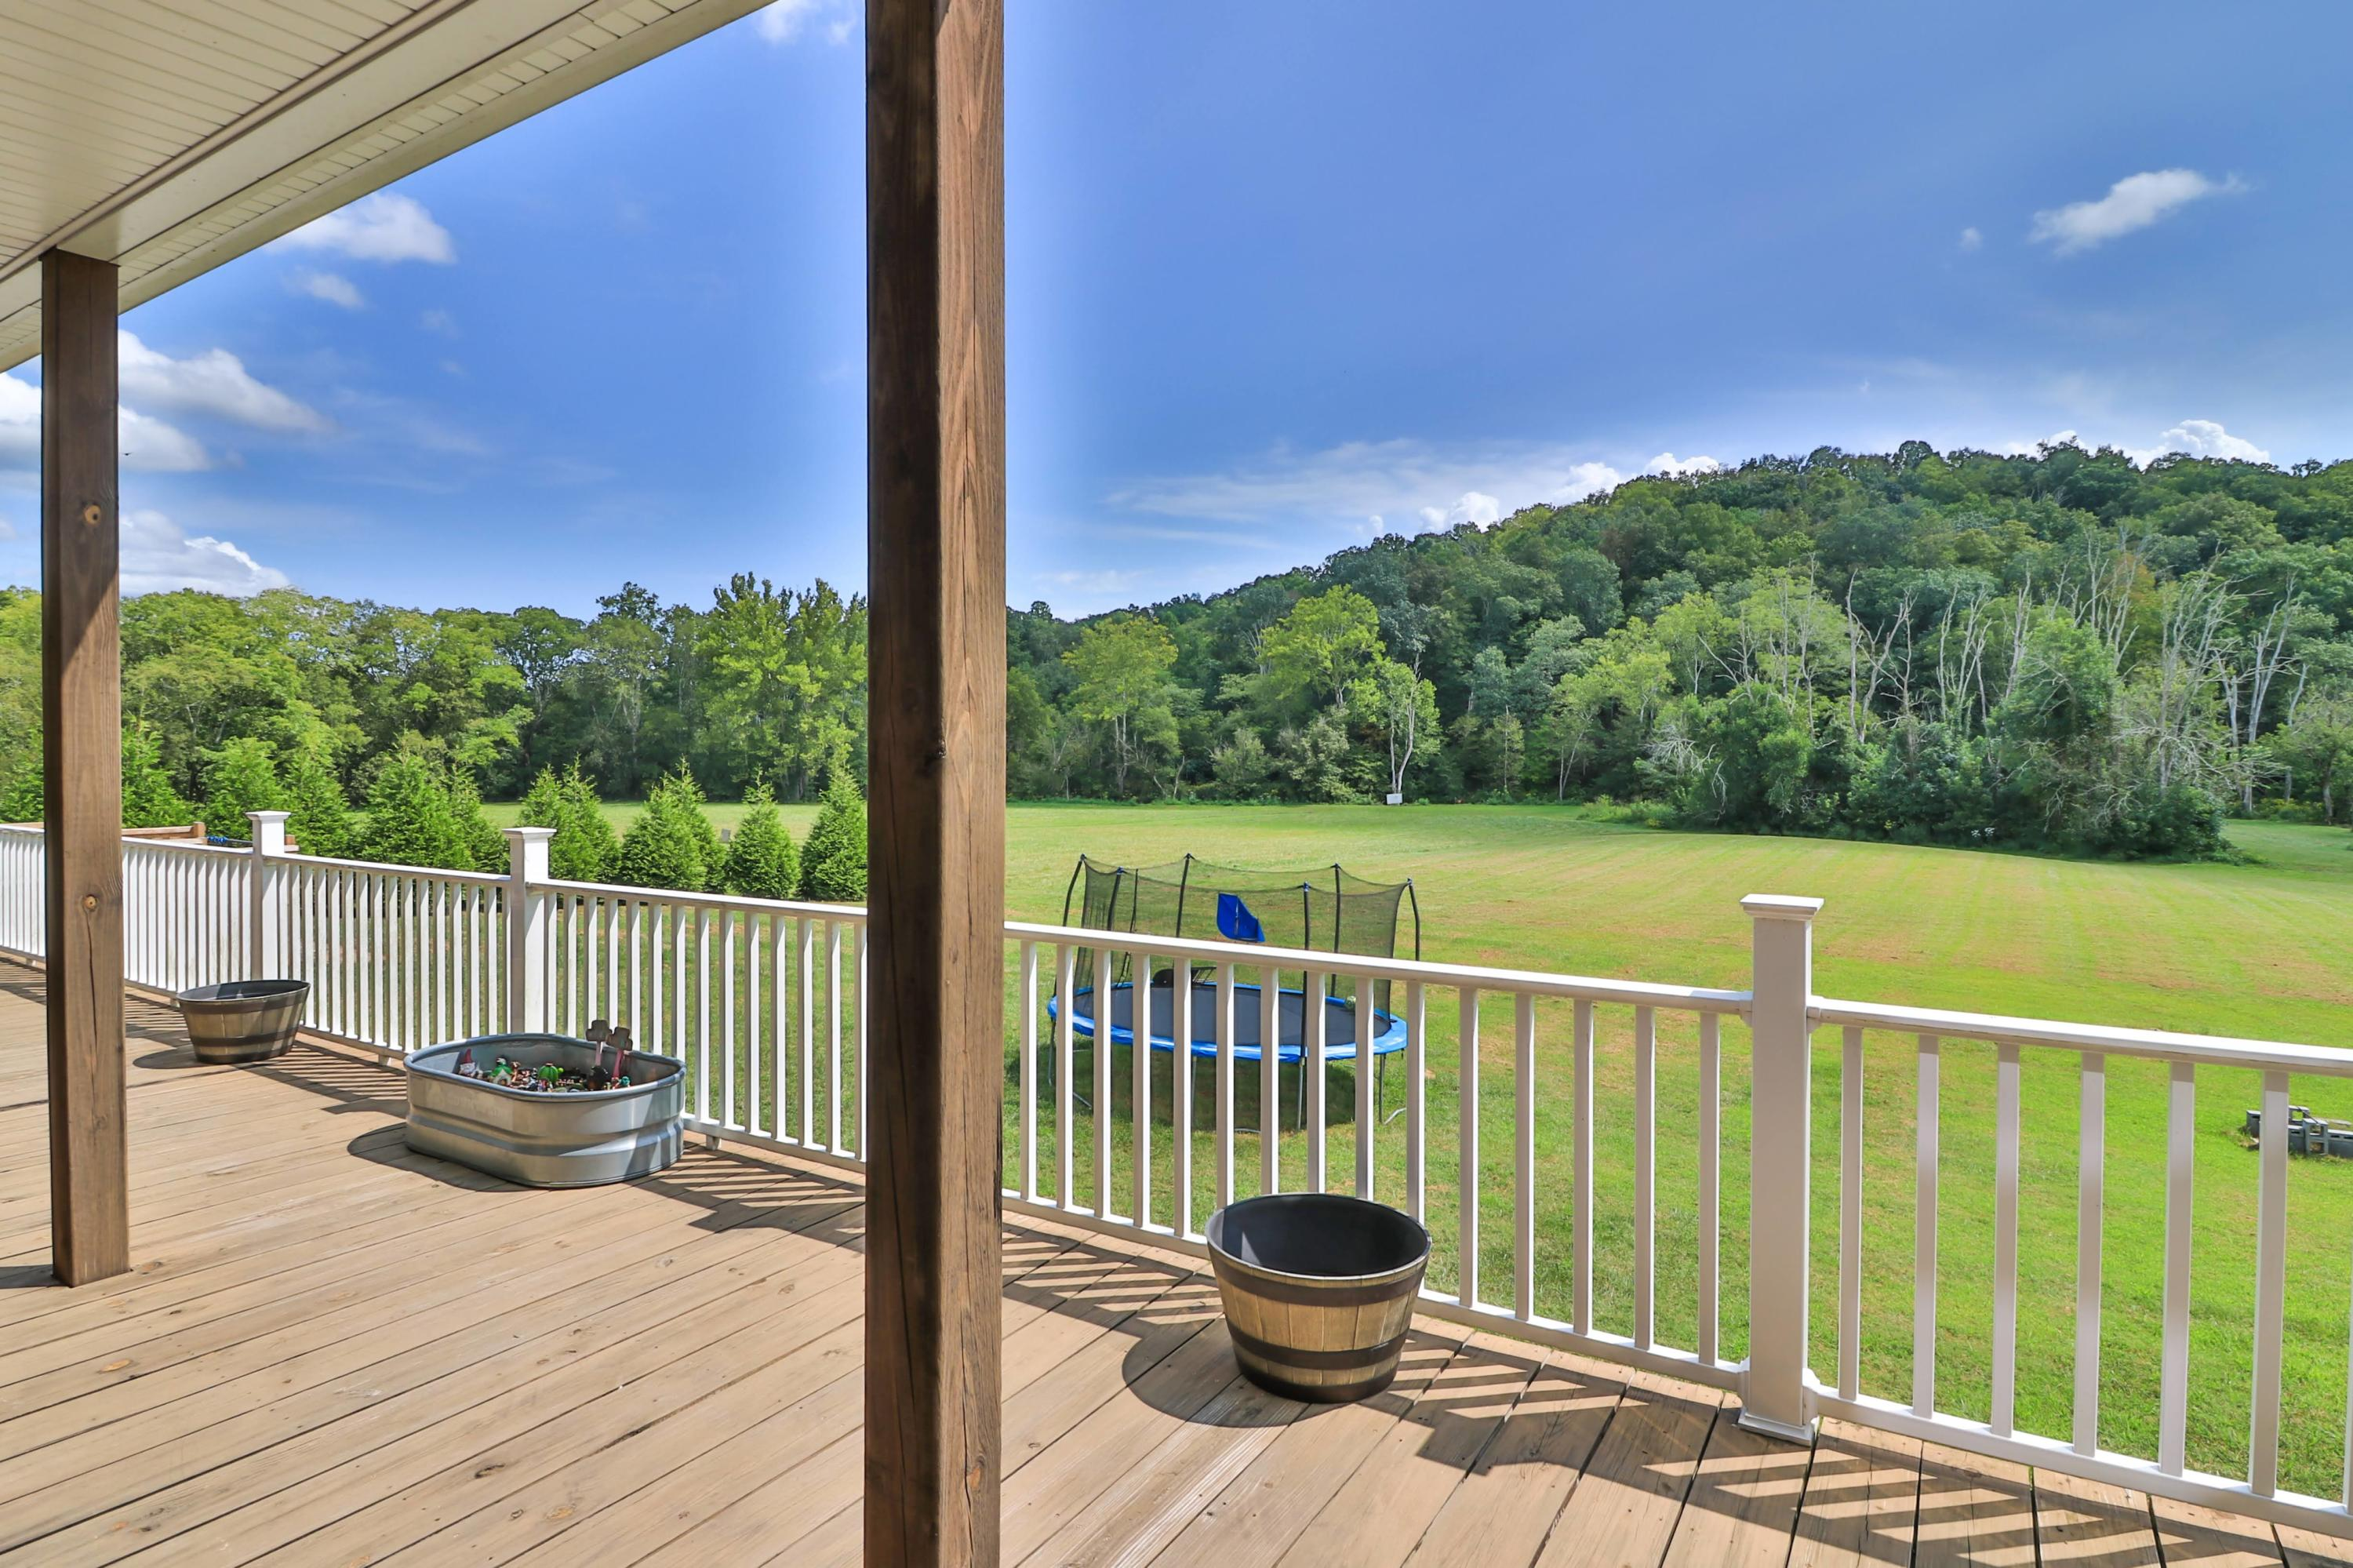 535 Deer Trace Way, Seymour, Tennessee 37865, 4 Bedrooms Bedrooms, ,4 BathroomsBathrooms,Single Family,For Sale,Deer Trace,1129714